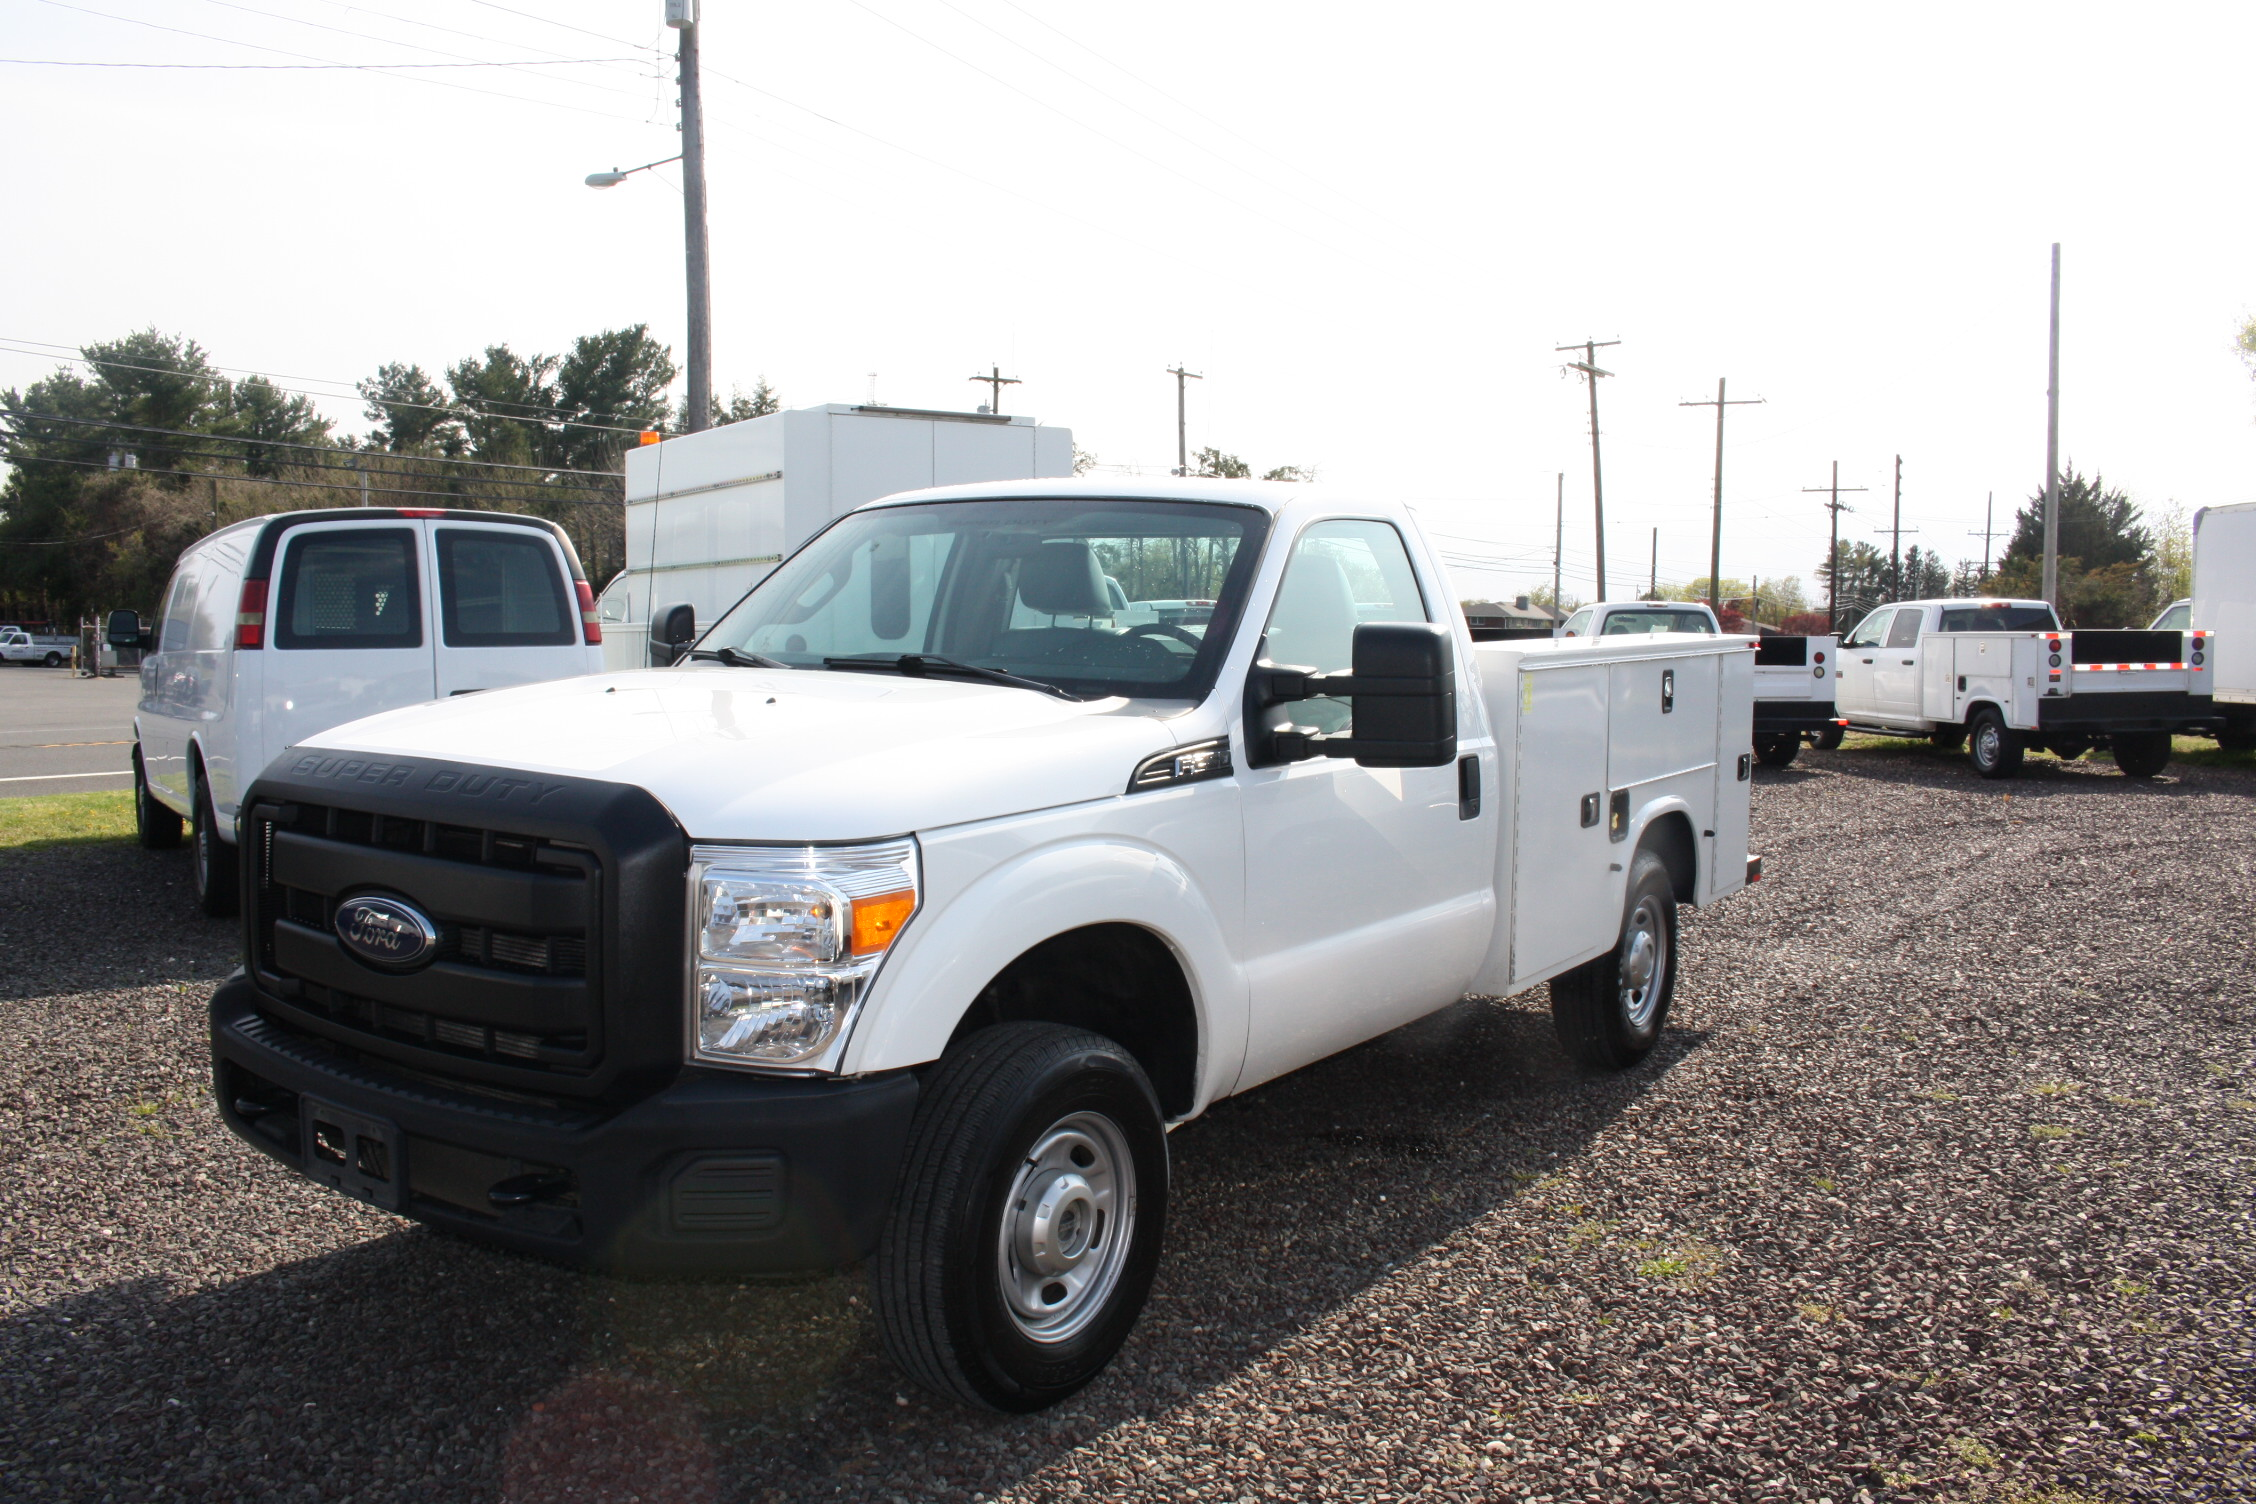 IMG 3578 1 - 2015 FORD F250 OPEN UTILITY TRUCK